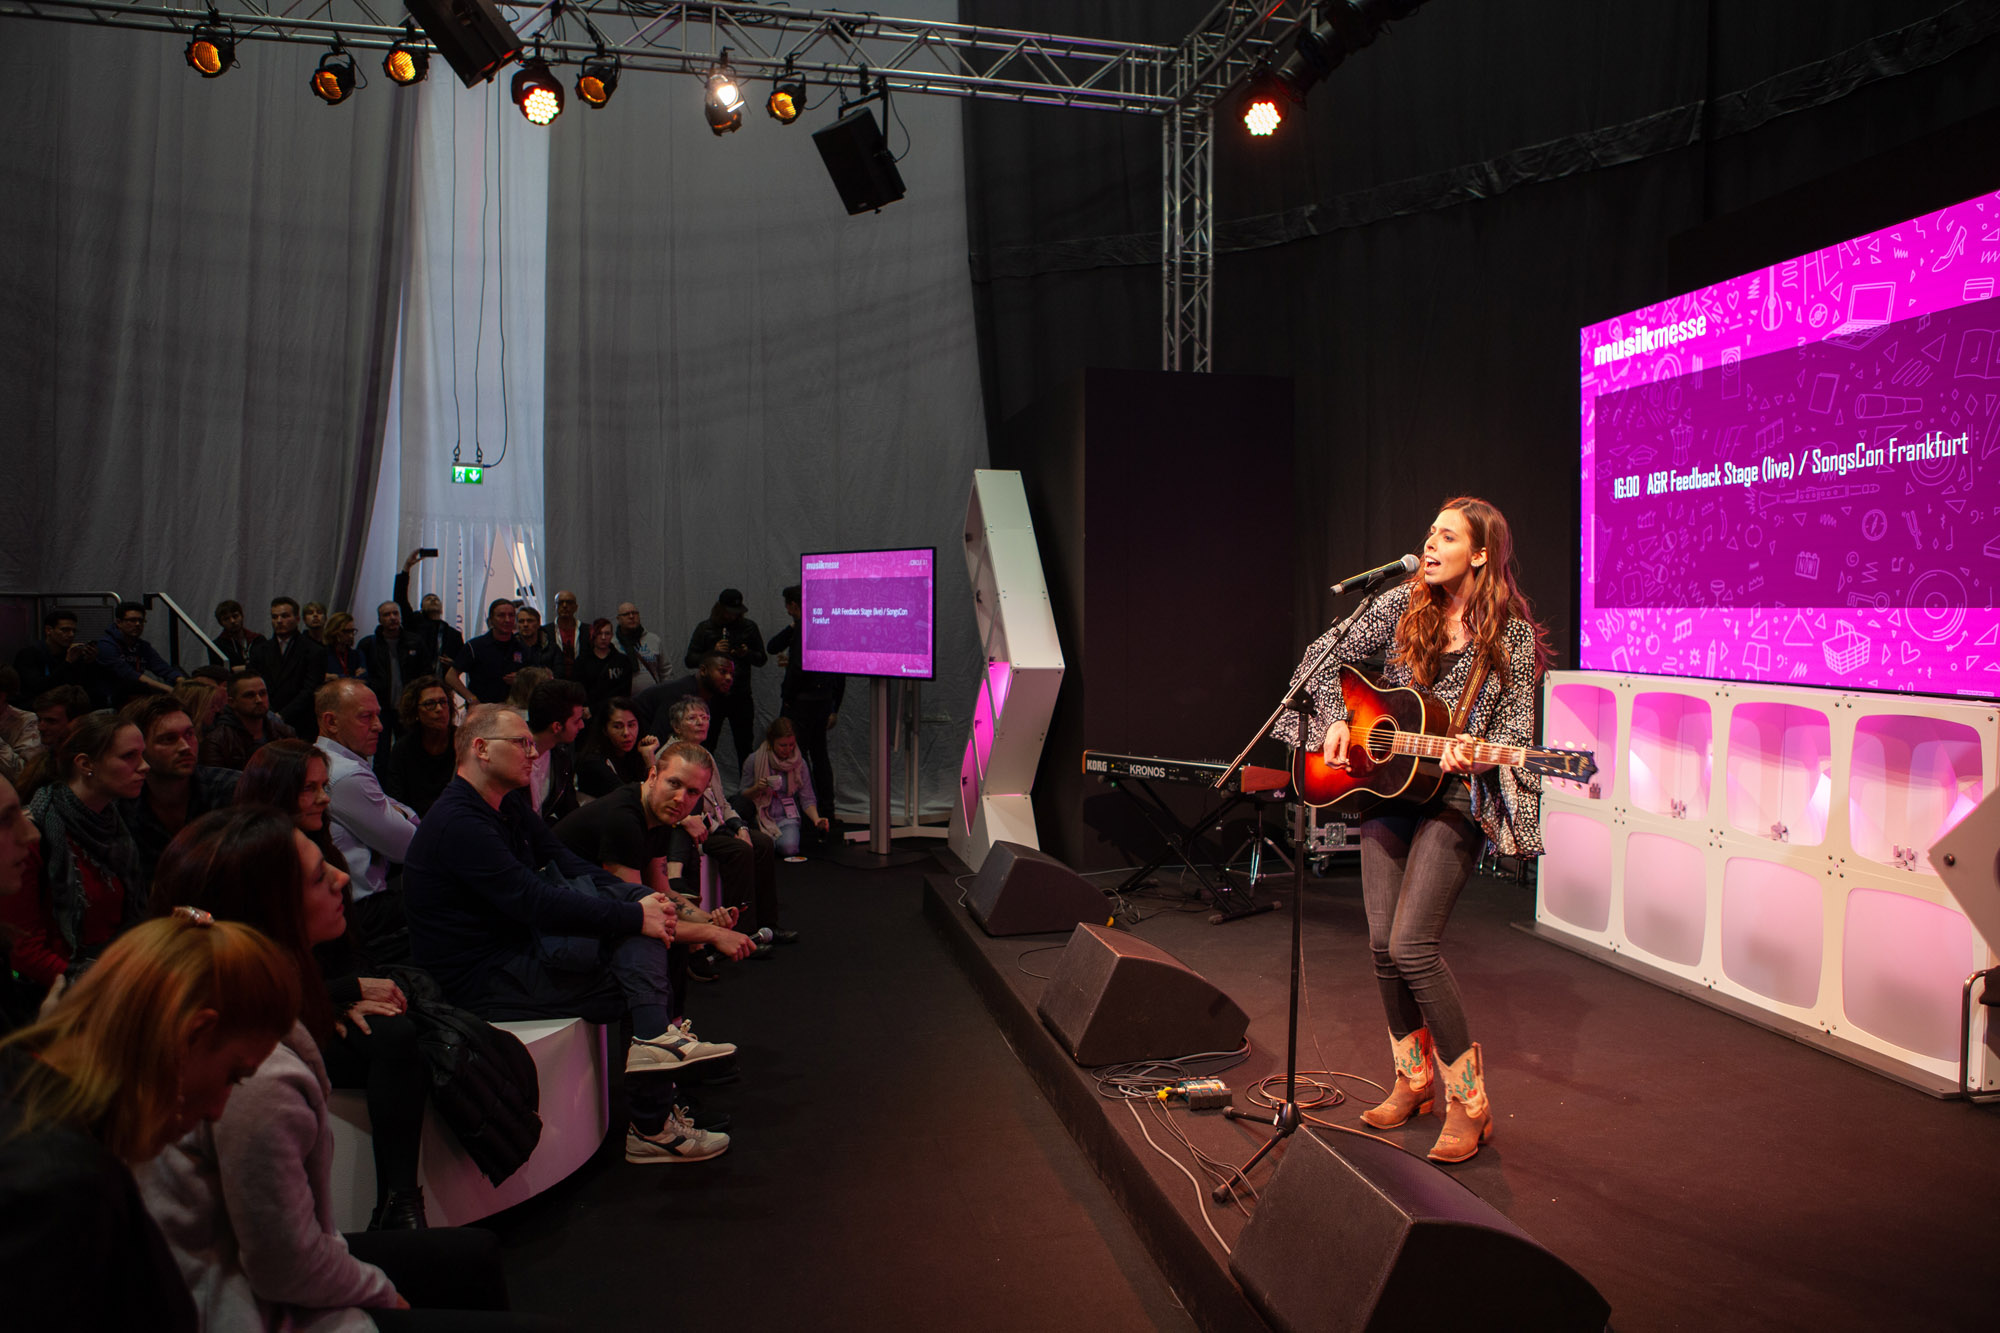 European Songwriting Award at Musikmesse